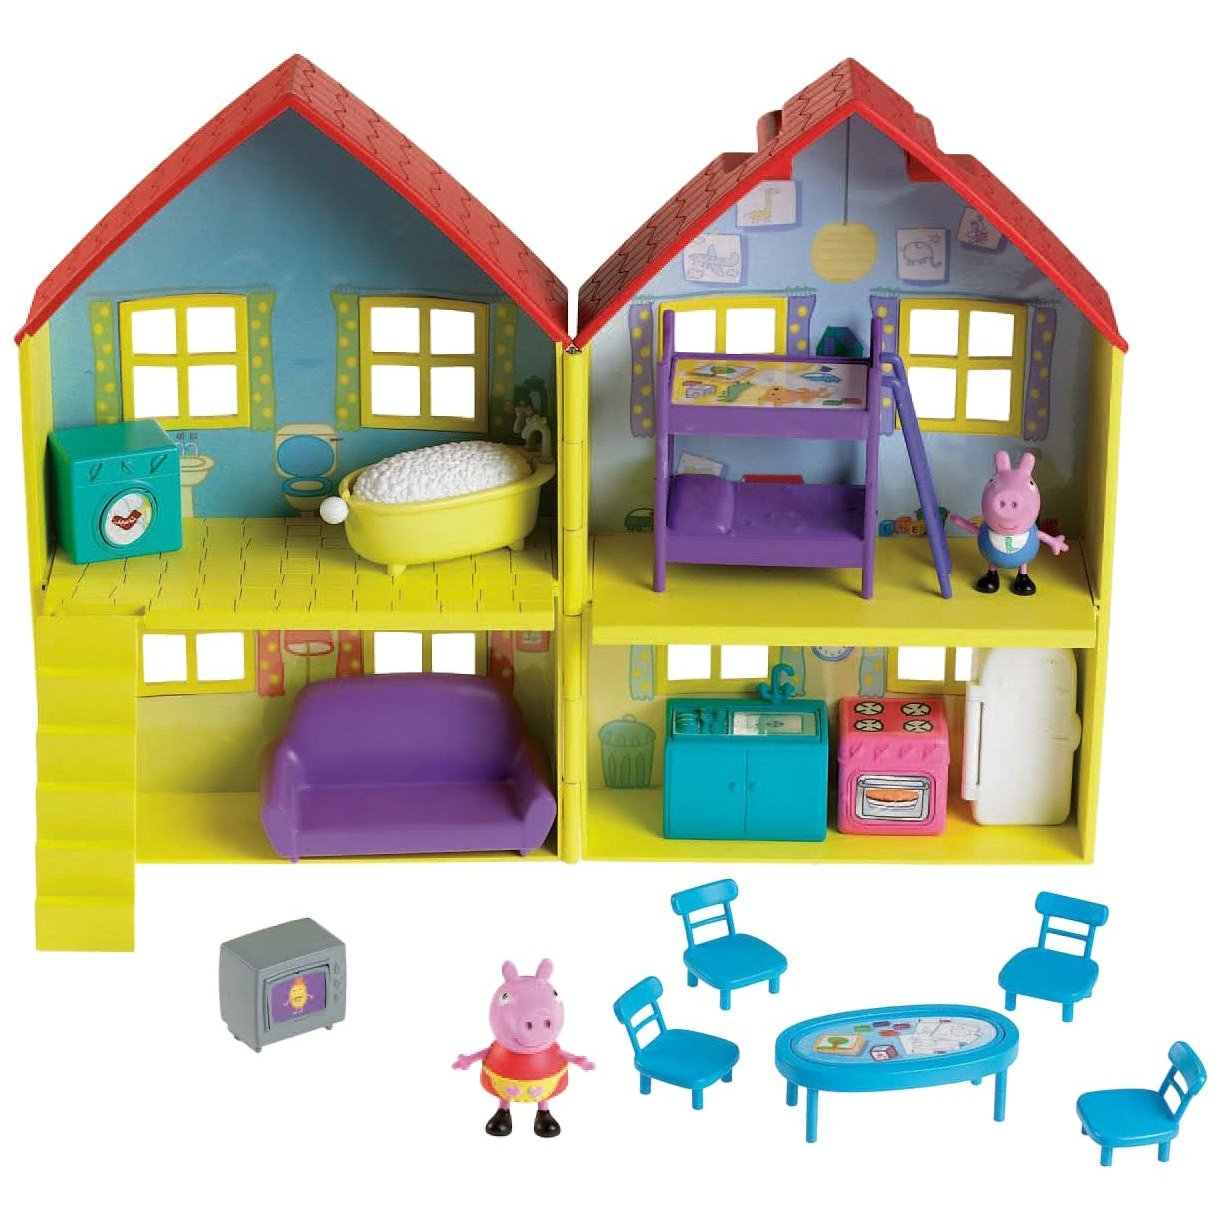 Room With Lots Of Books Free Wiring Diagram For You Dolls House New Peppa Pig Toys An Adorable Way To Play Lille Punkin Small